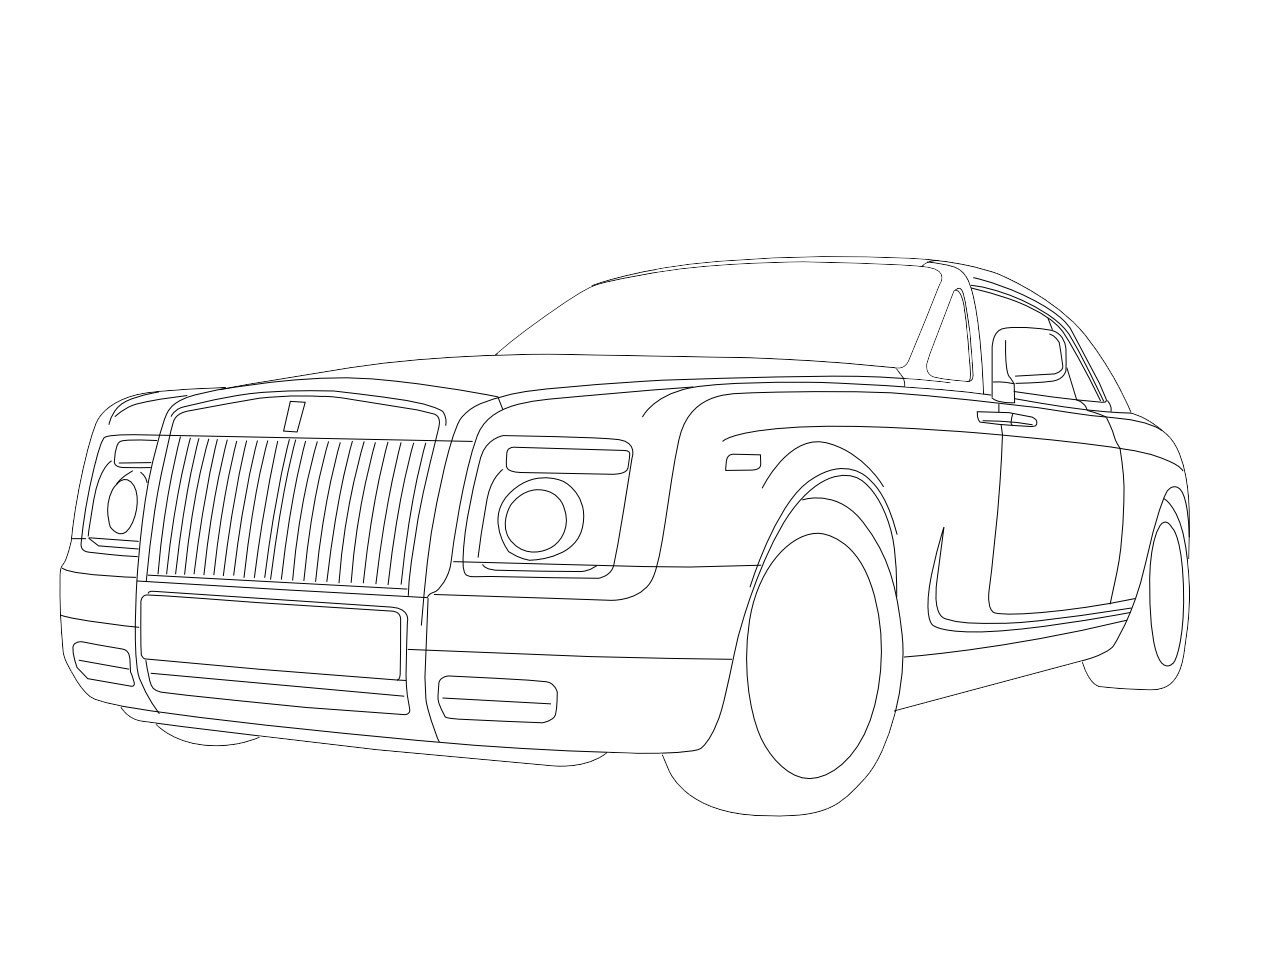 Best ideas about Coloring Pages For Teens Roll Royce . Save or Pin Rolls Royce Coloring Pages Now.